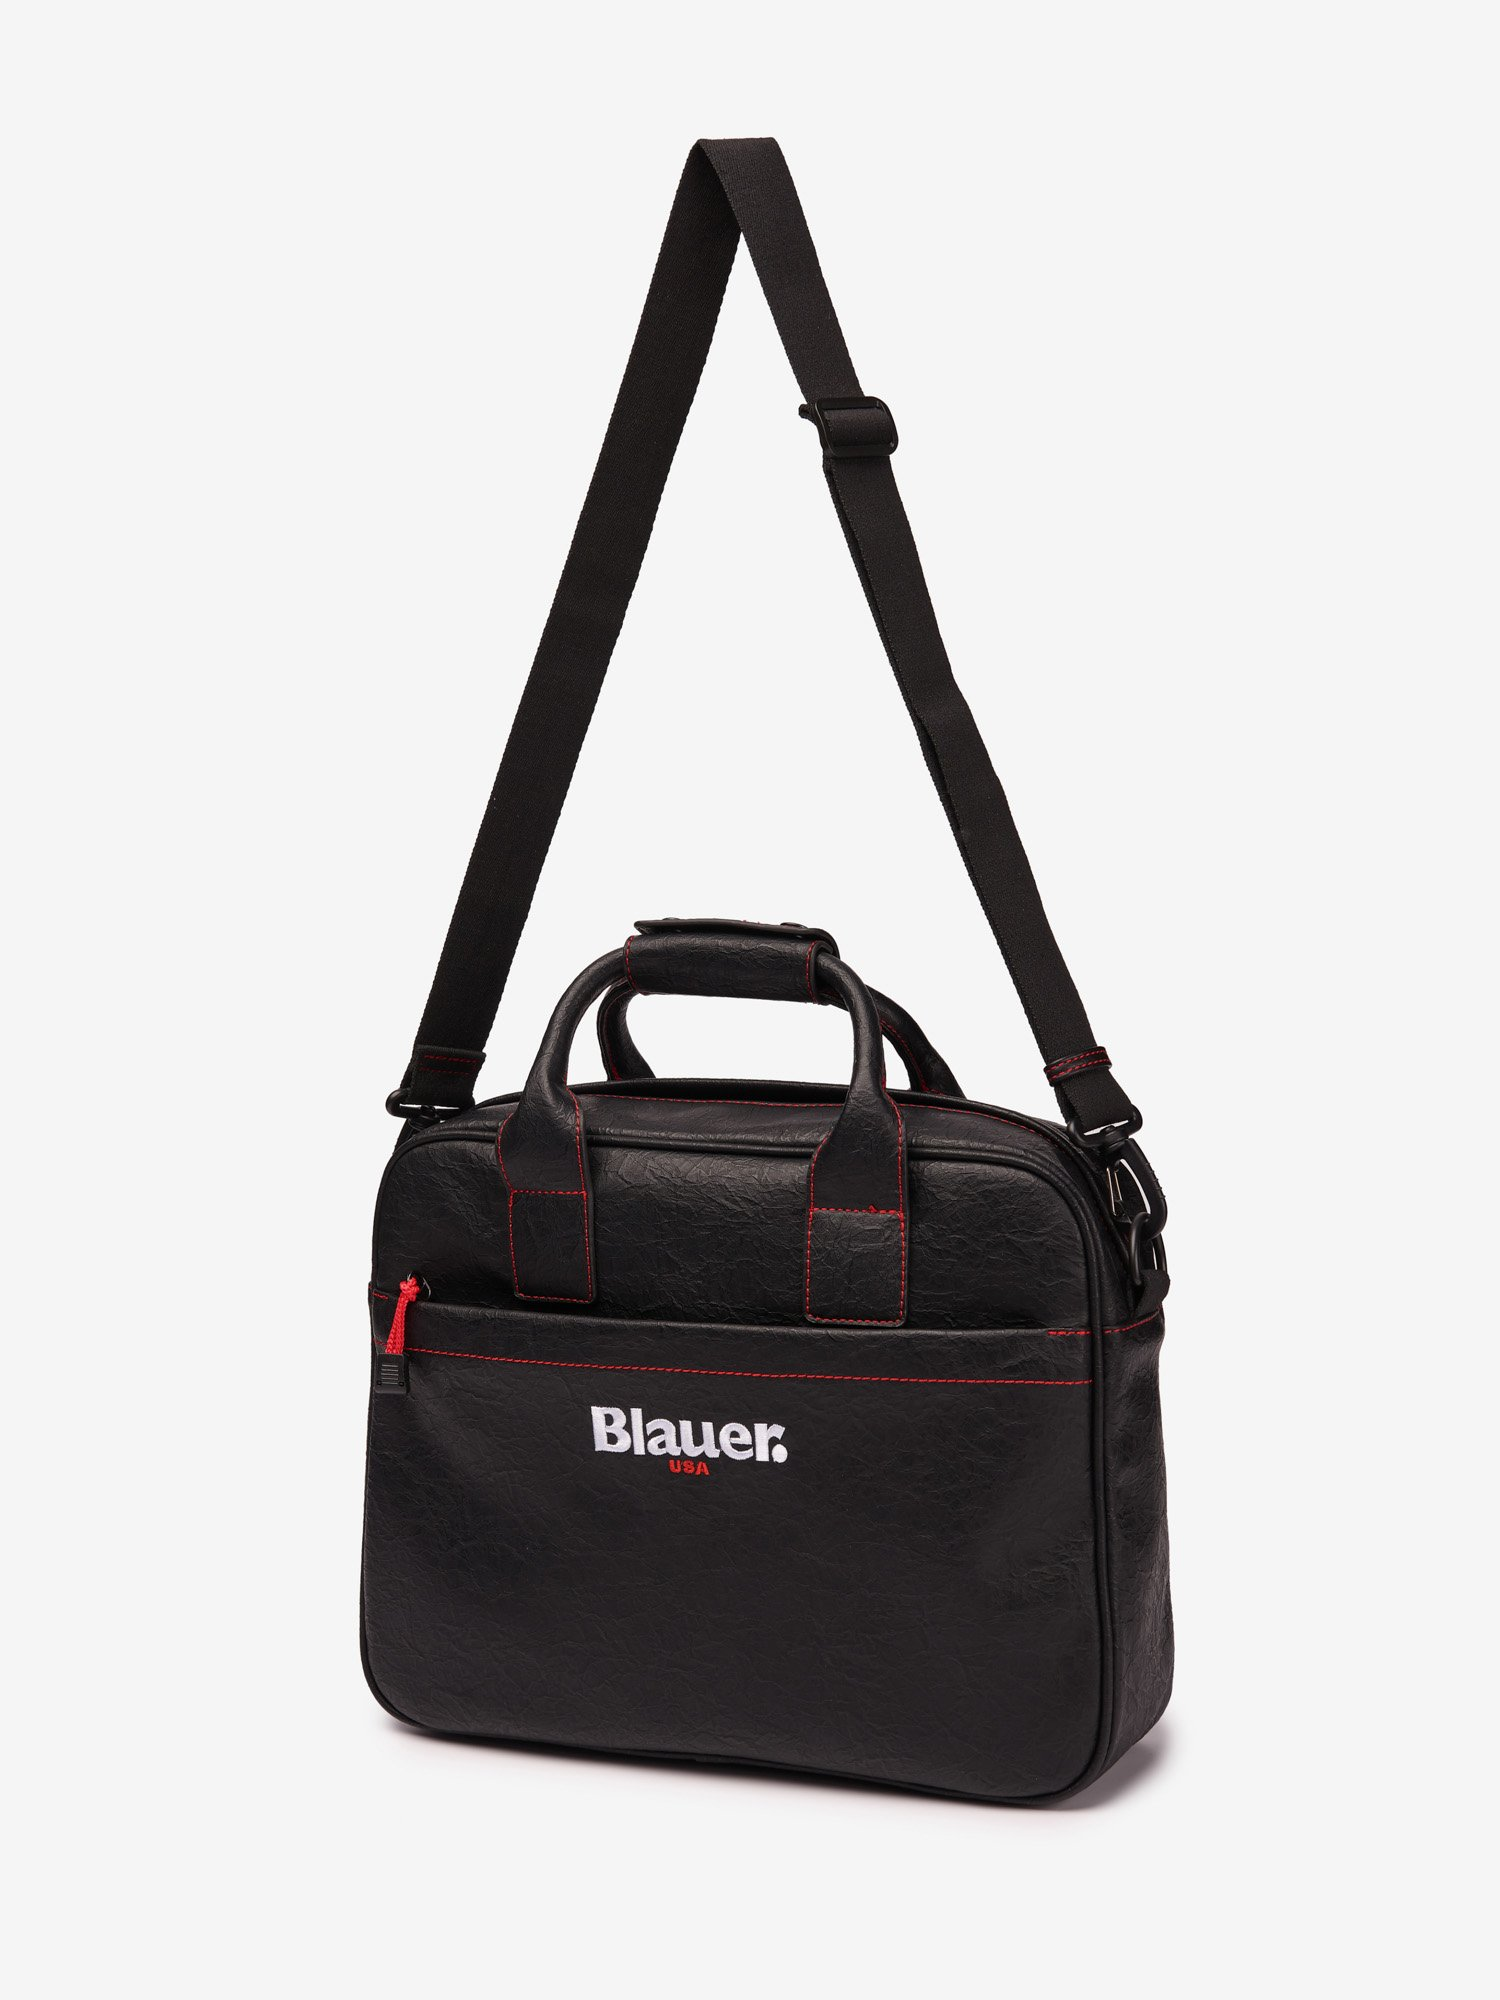 HERO BRIEFCASE - Blauer